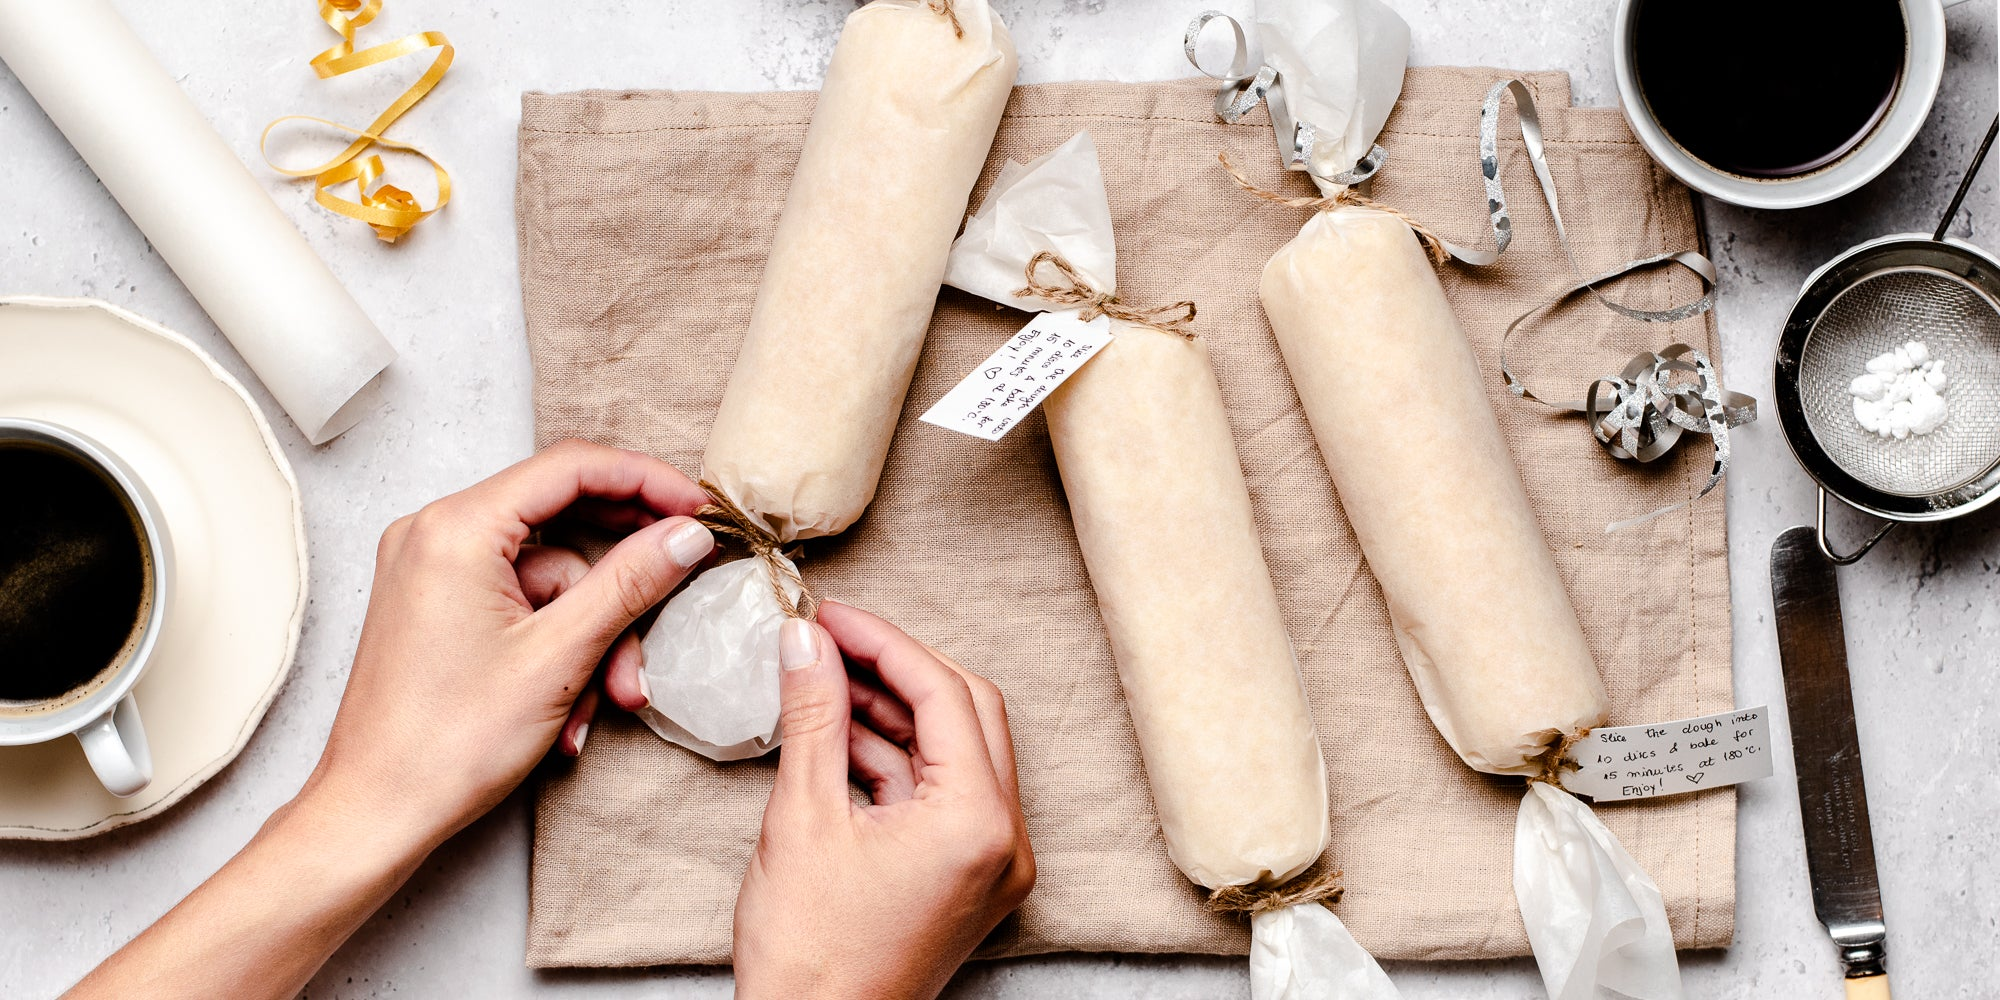 Shortbread Dough being tied into parchment paper rolls, ready to use. Hands tying a bow of ribbon